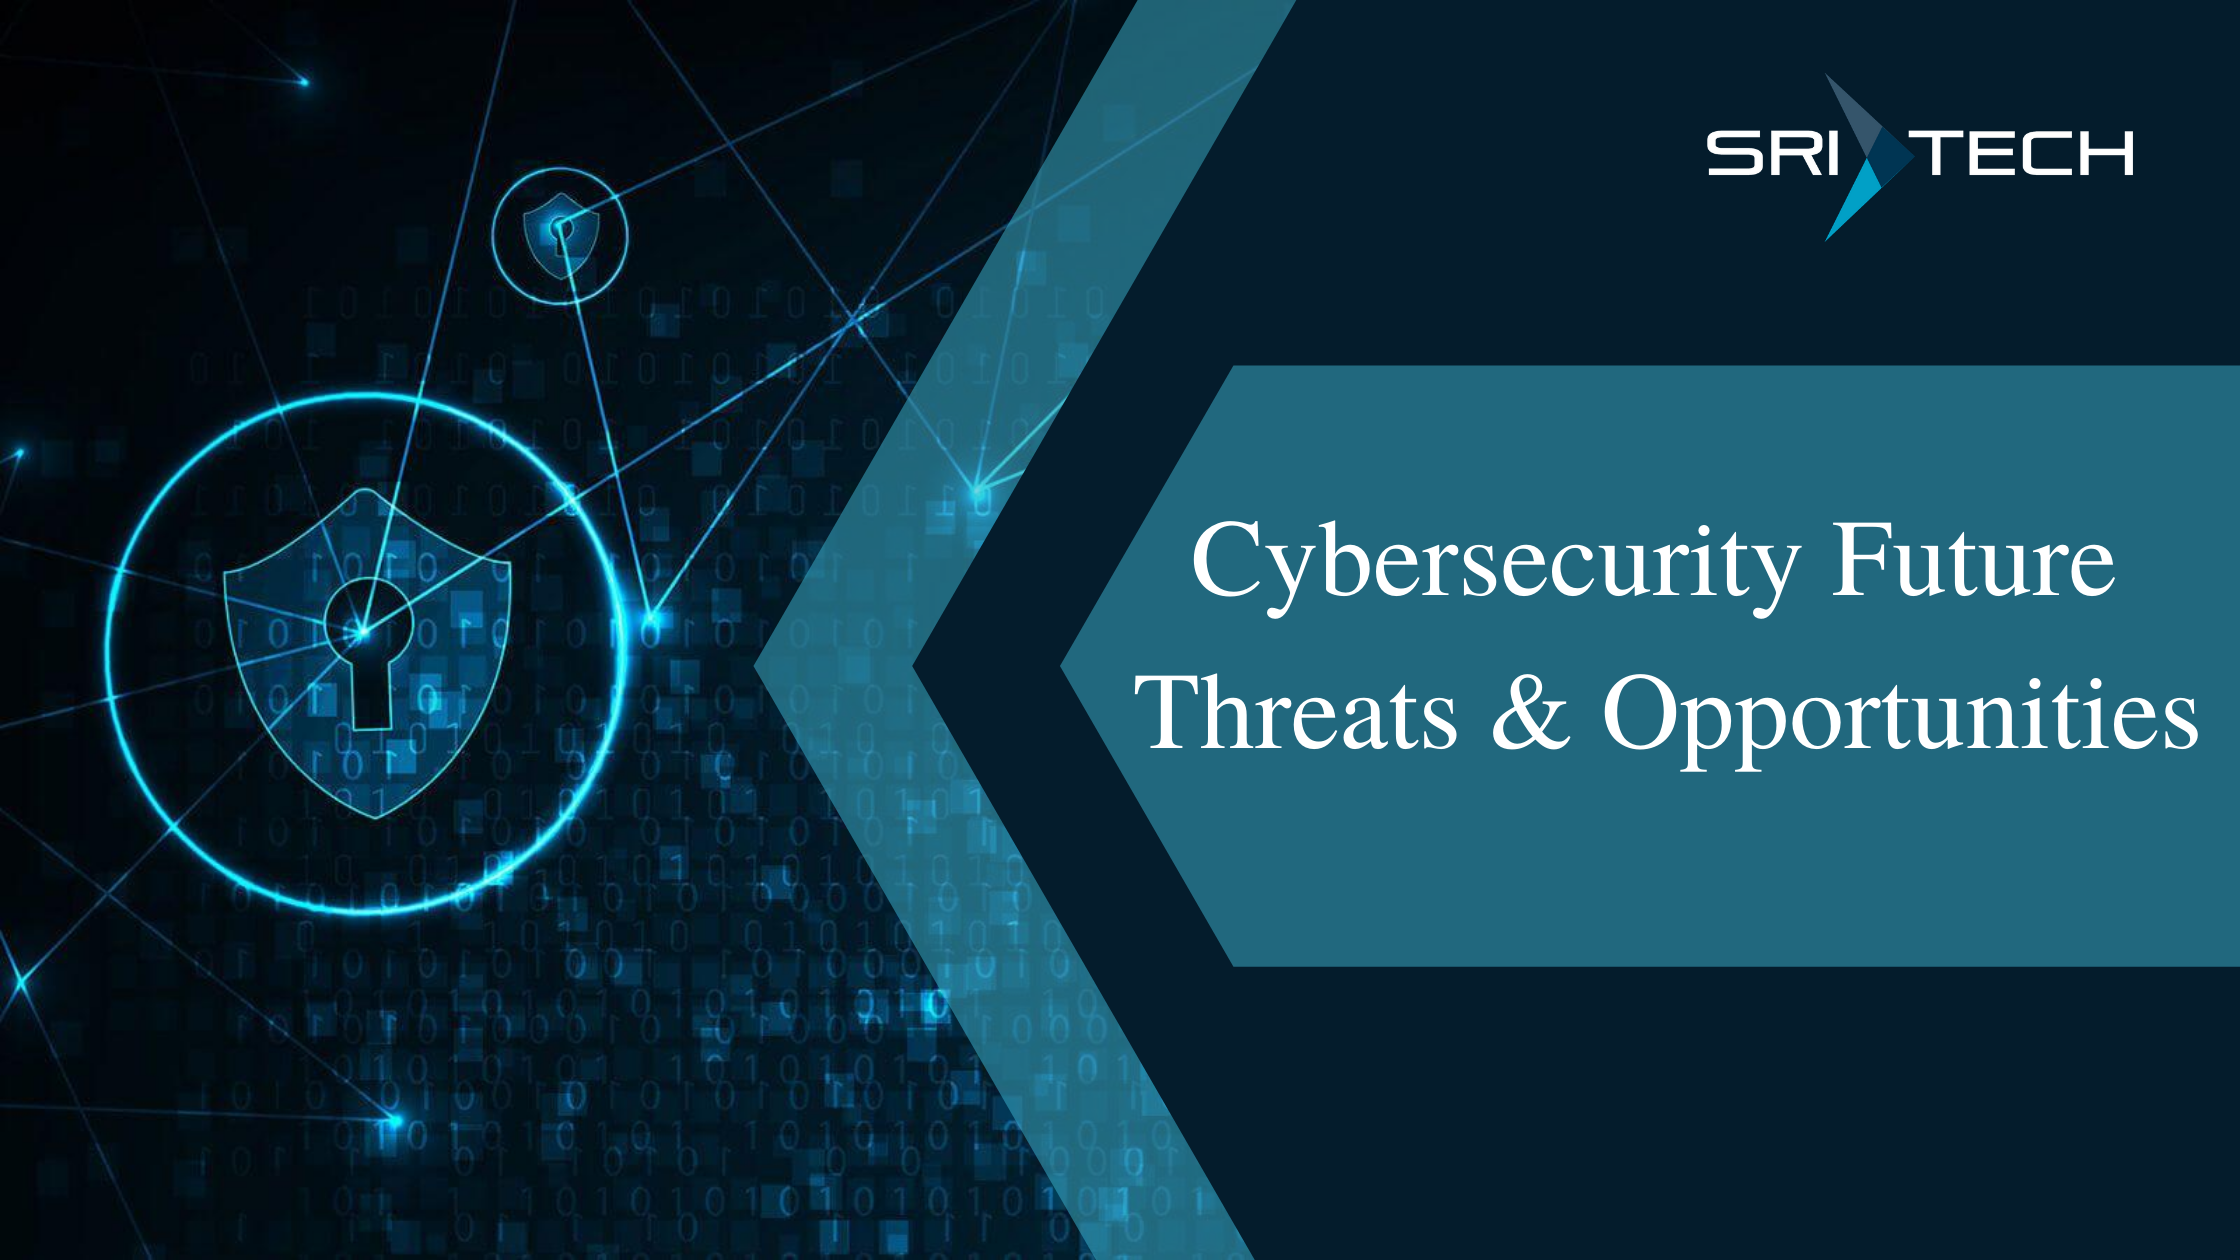 Cybersecurity Future Threats & Opportunities